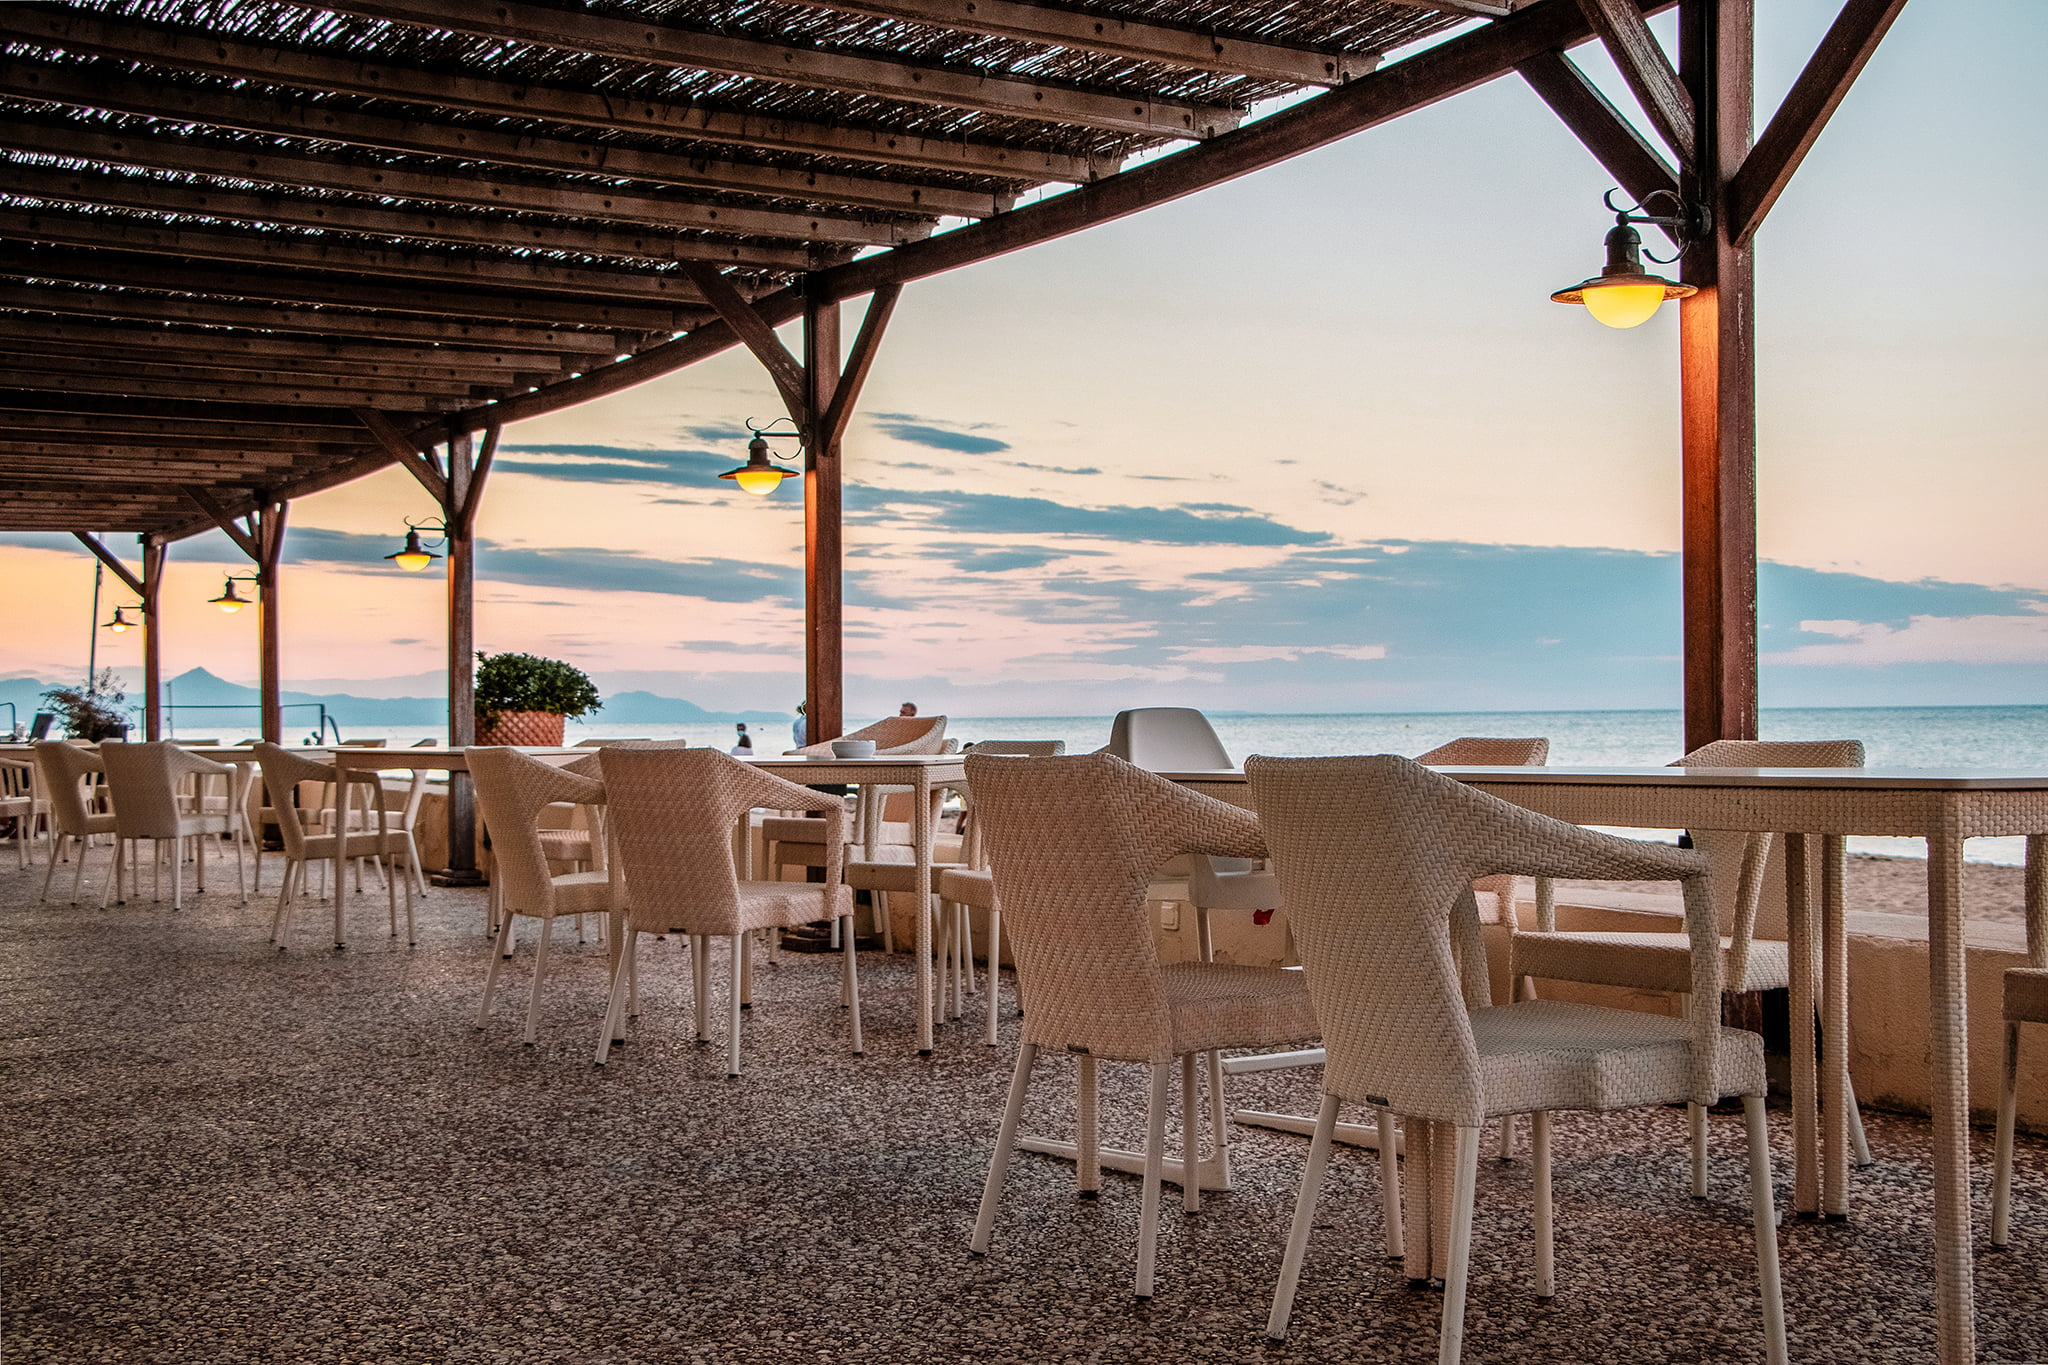 Restaurante frente al mar en Dénia – Hotel Los Angeles